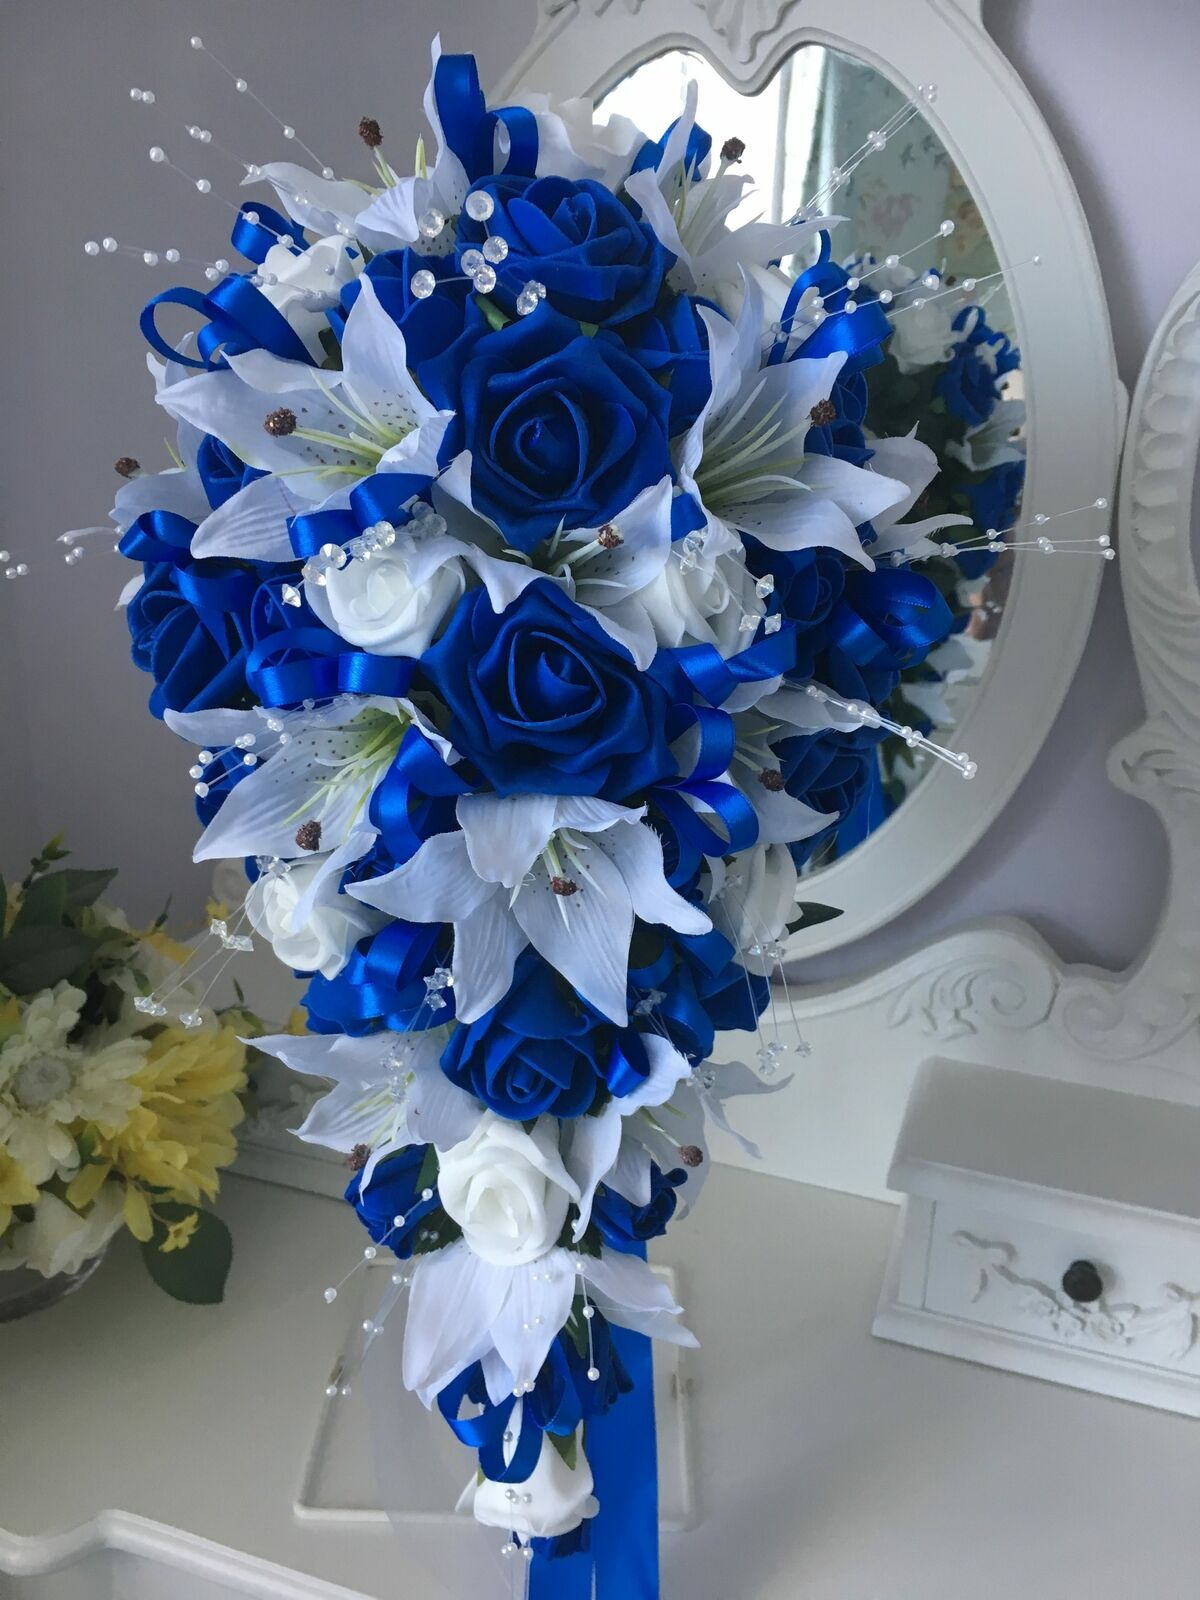 Bridal teardrop shower bouquet in Royal Blau and Weiß